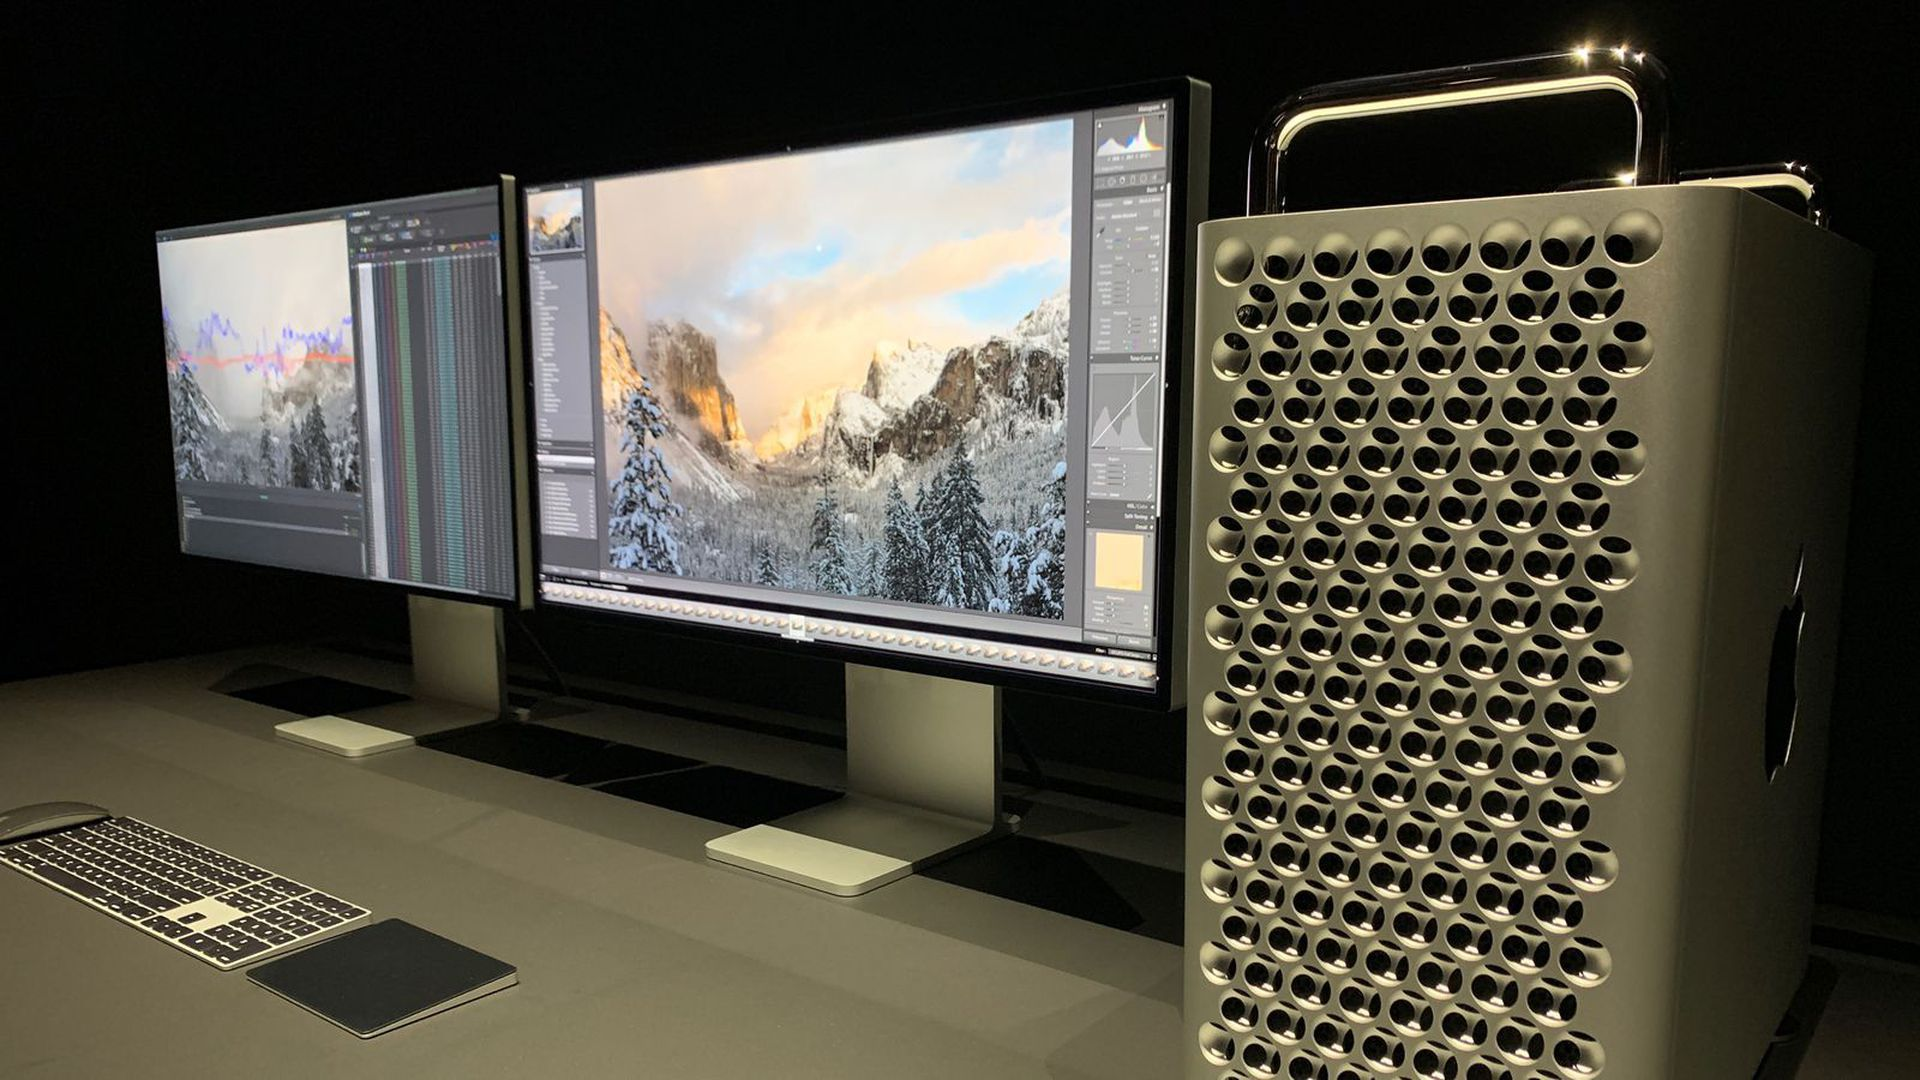 Apple's redesigned Mac Pro desktop computer